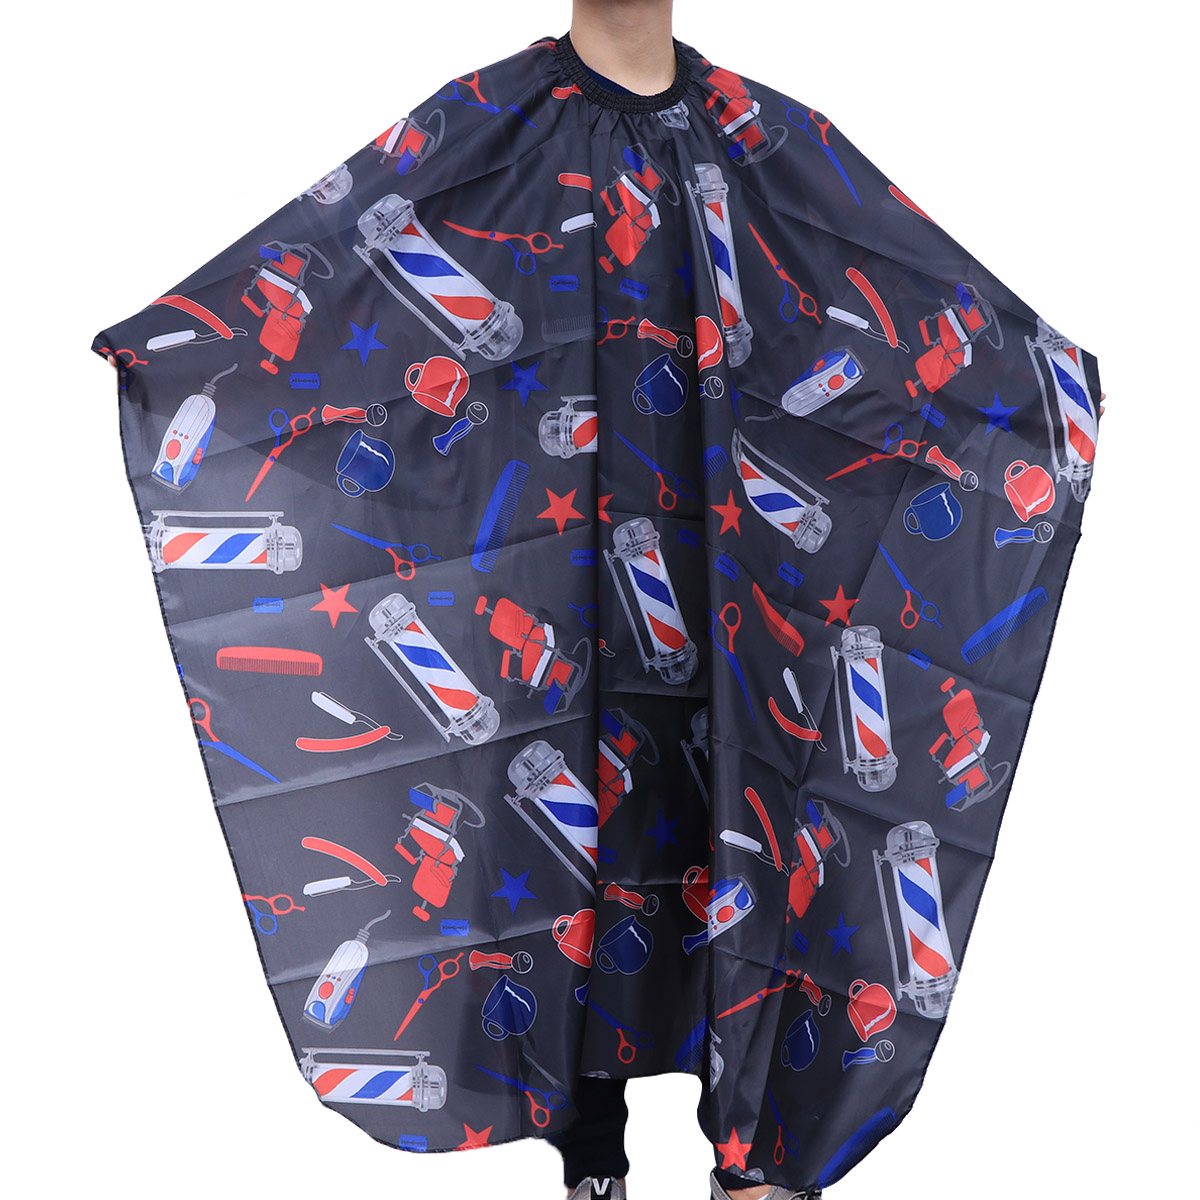 a5e13de1f Detail Feedback Questions about 1PC Haircut Cape Waterproof Prined ...